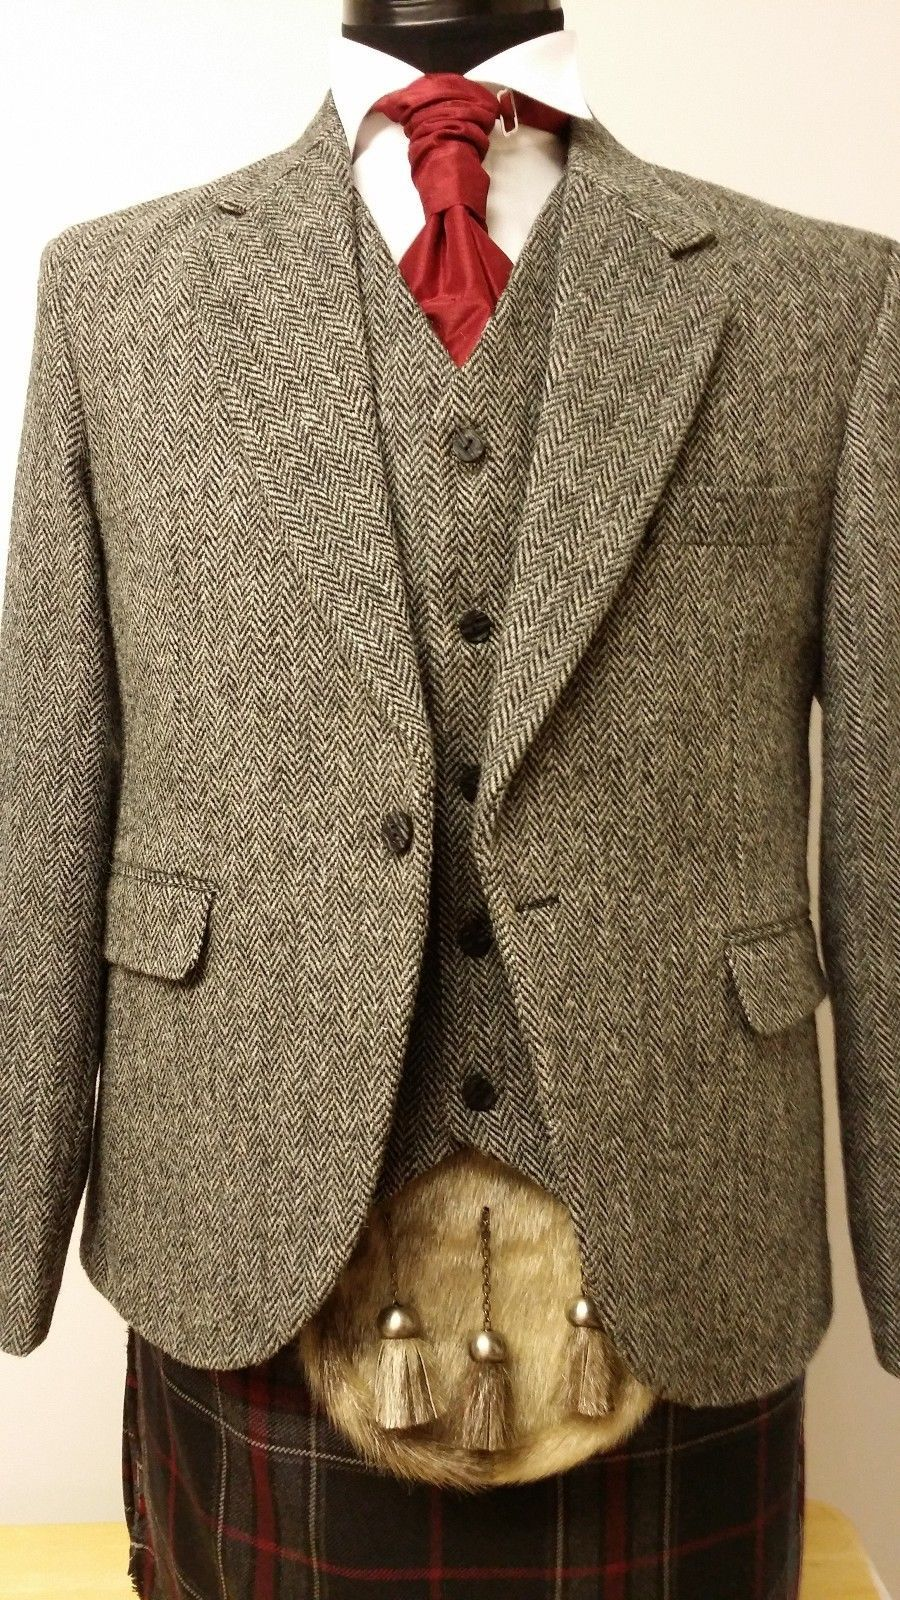 Grey Harris Tweed Laxdale Kilt Jacket Vest Set 100 Wool Jacket Only Vest Only Kilt Jackets Harris Tweed Jacket Tweed Jacket Men